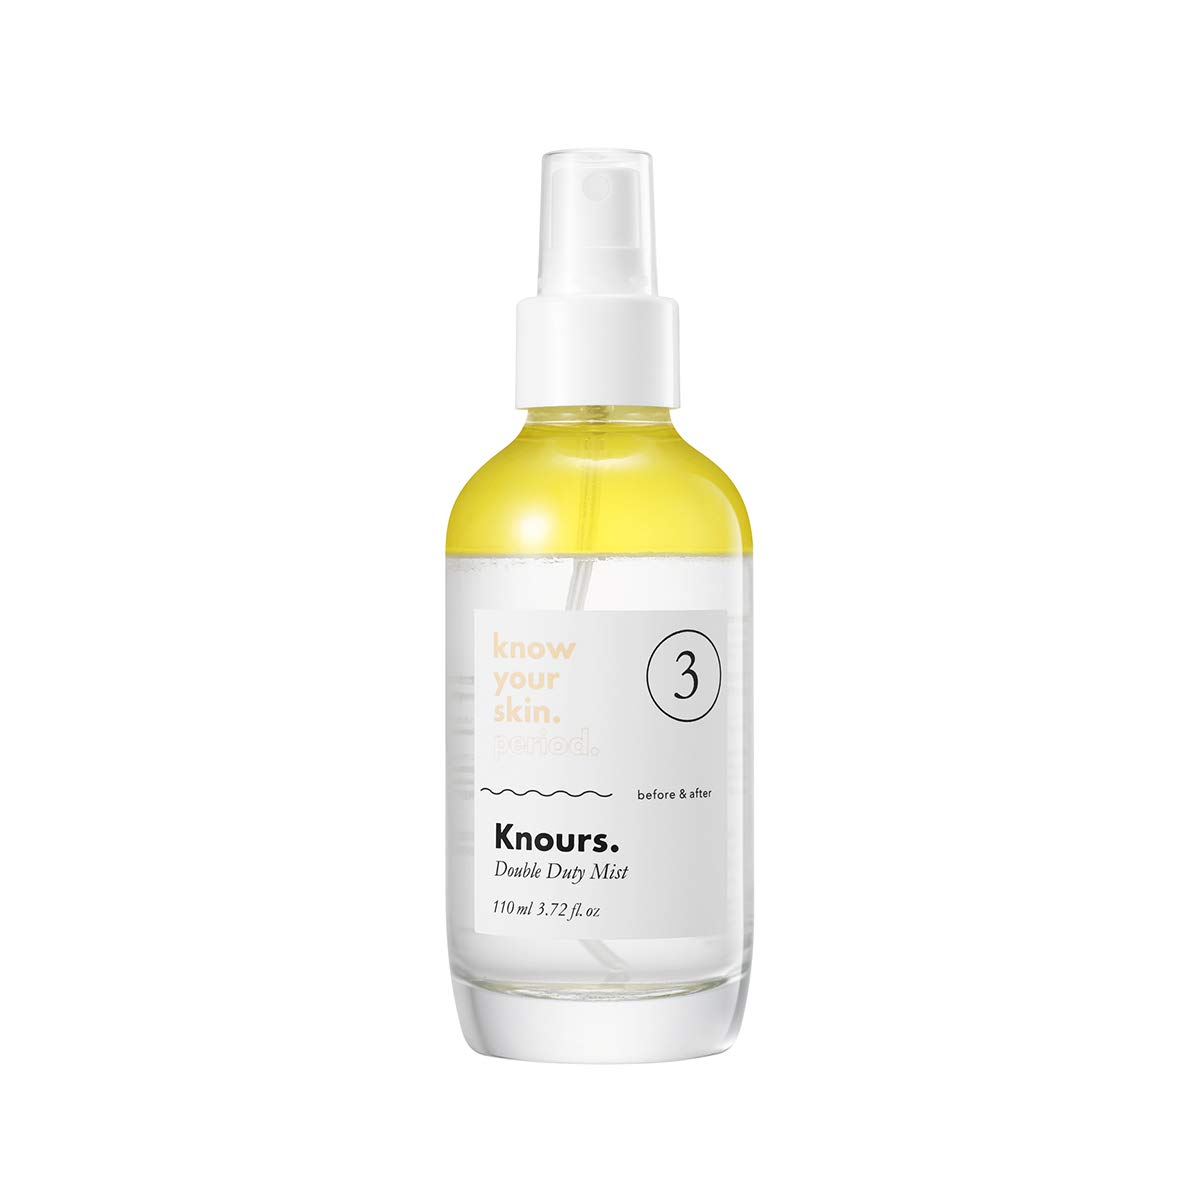 Knours. - Double Duty Mist | Soothing Nourishing Facial Mist EWG Verified Natural Ingredients Clean Beauty (110ml/3.72 fl oz.)…